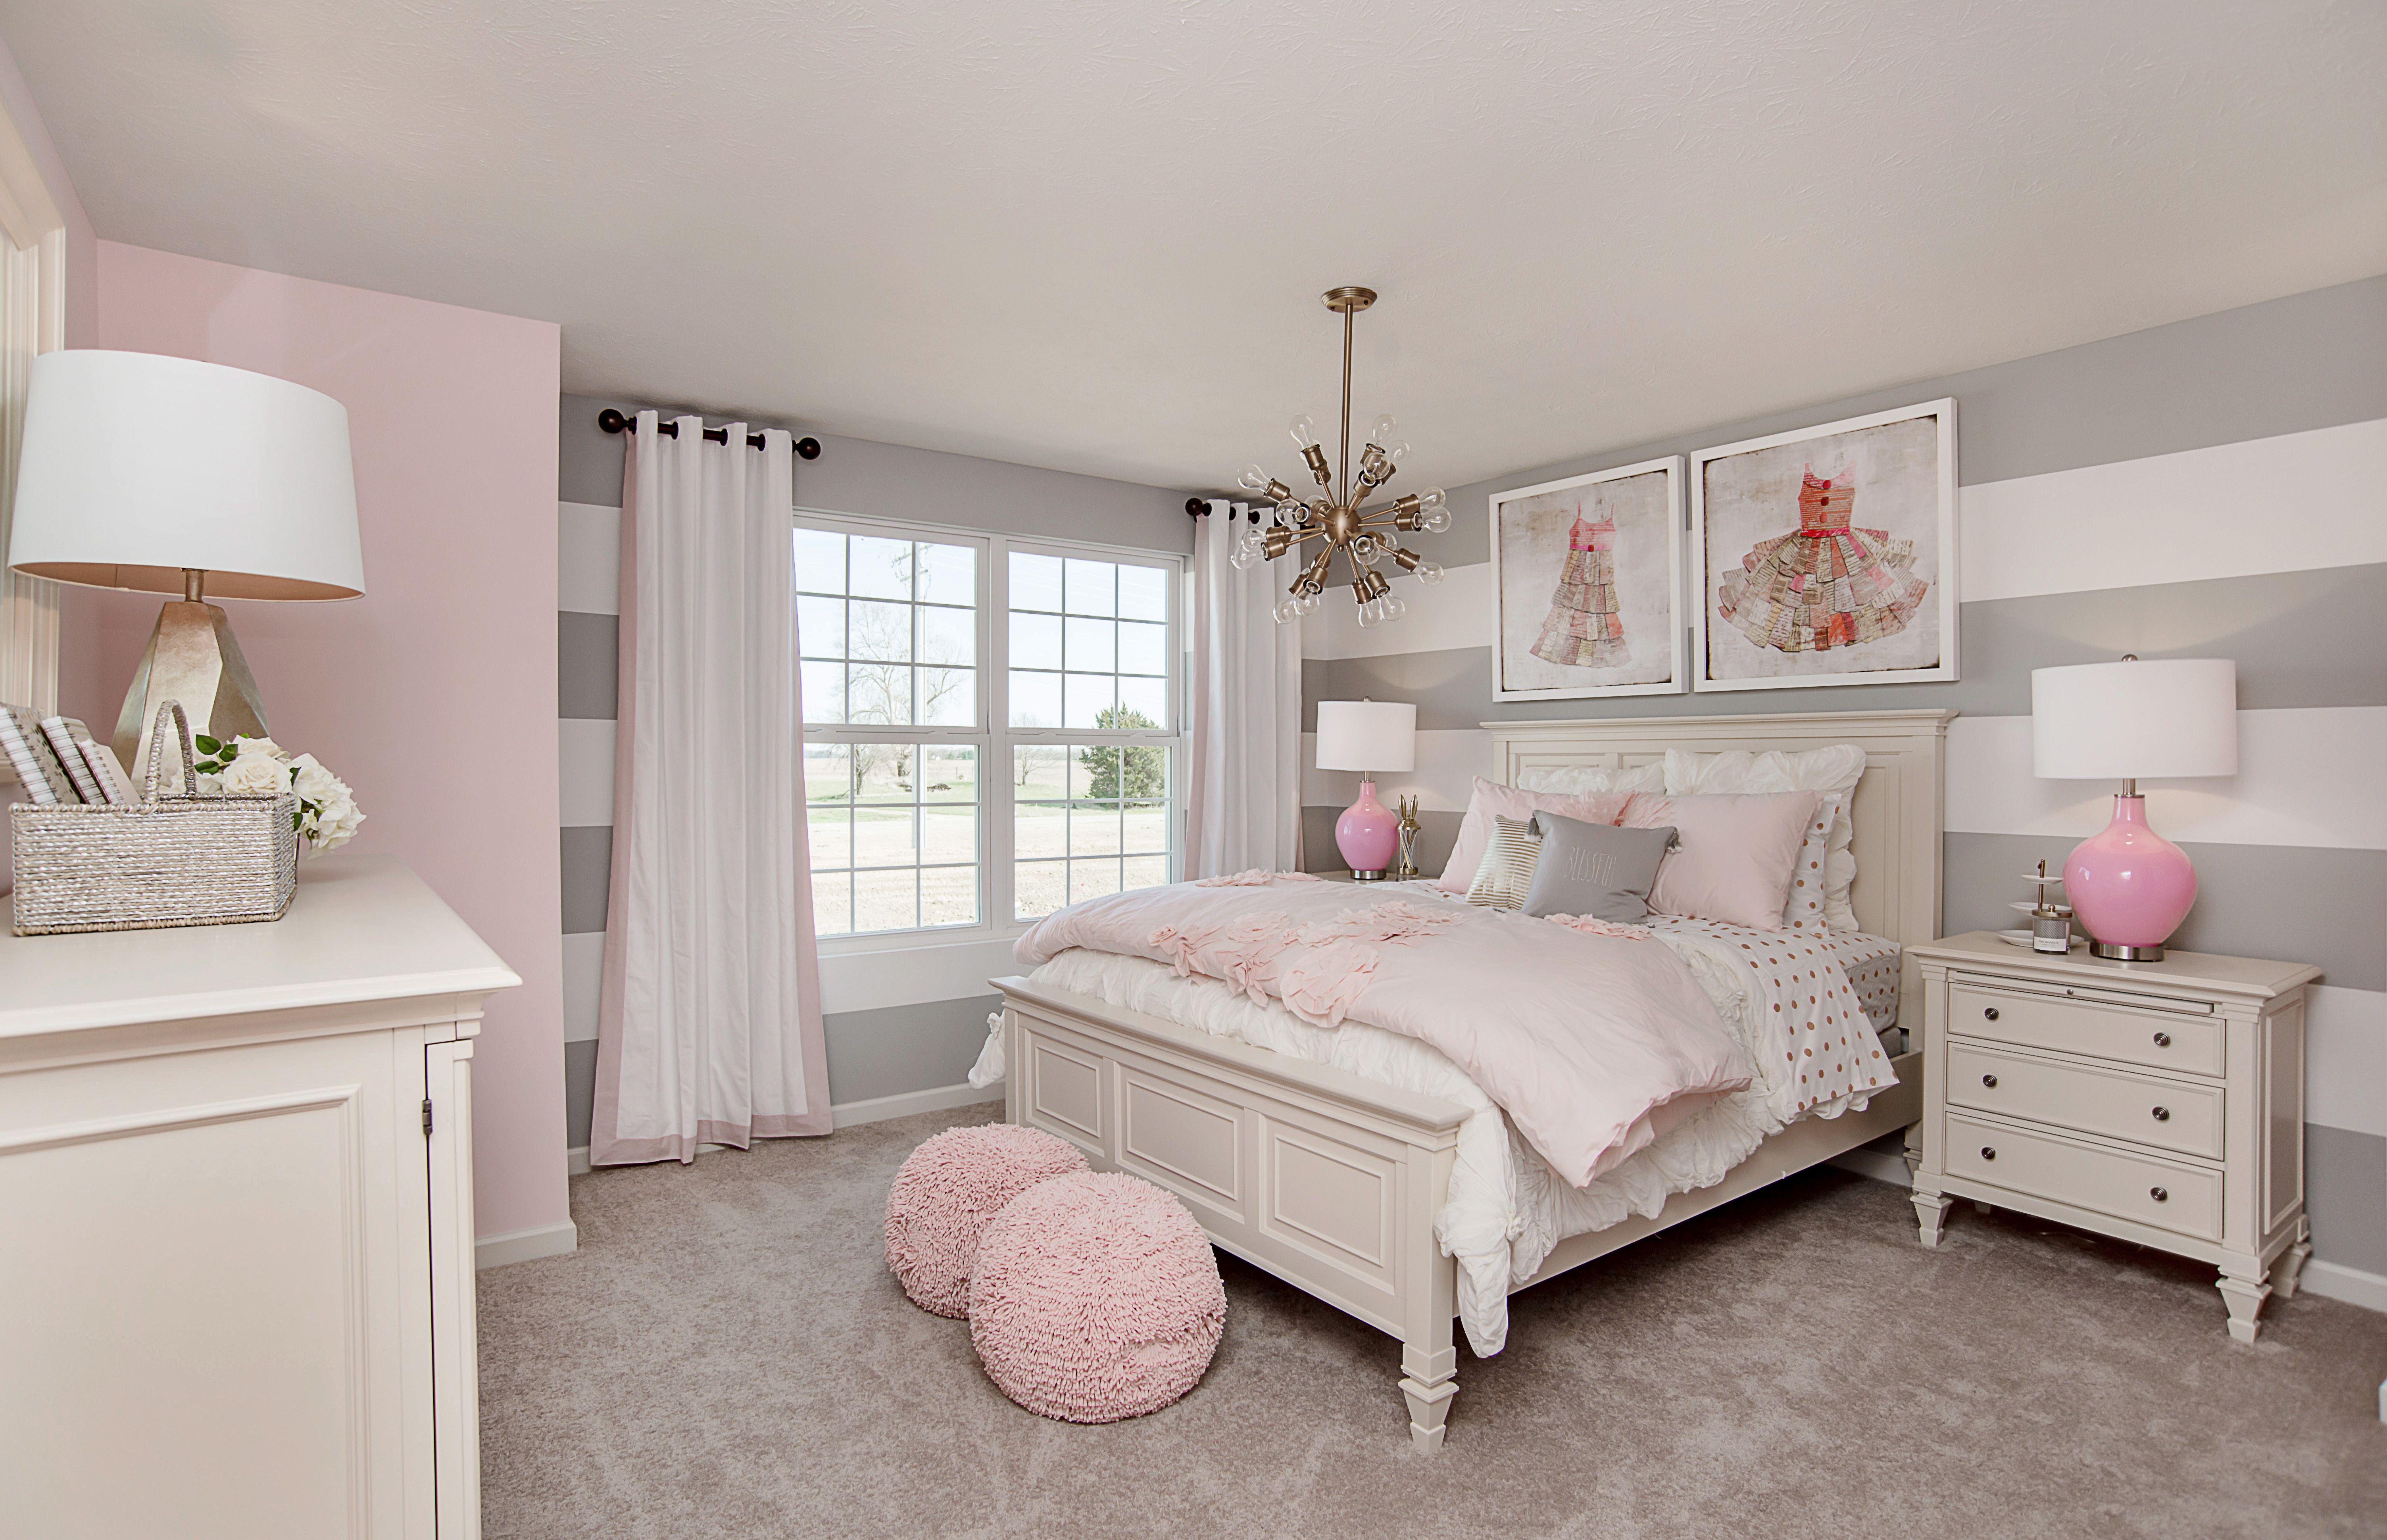 pin on ideas for kids on cute bedroom decor ideas for teen romantic bedroom decorating with light and color id=43019